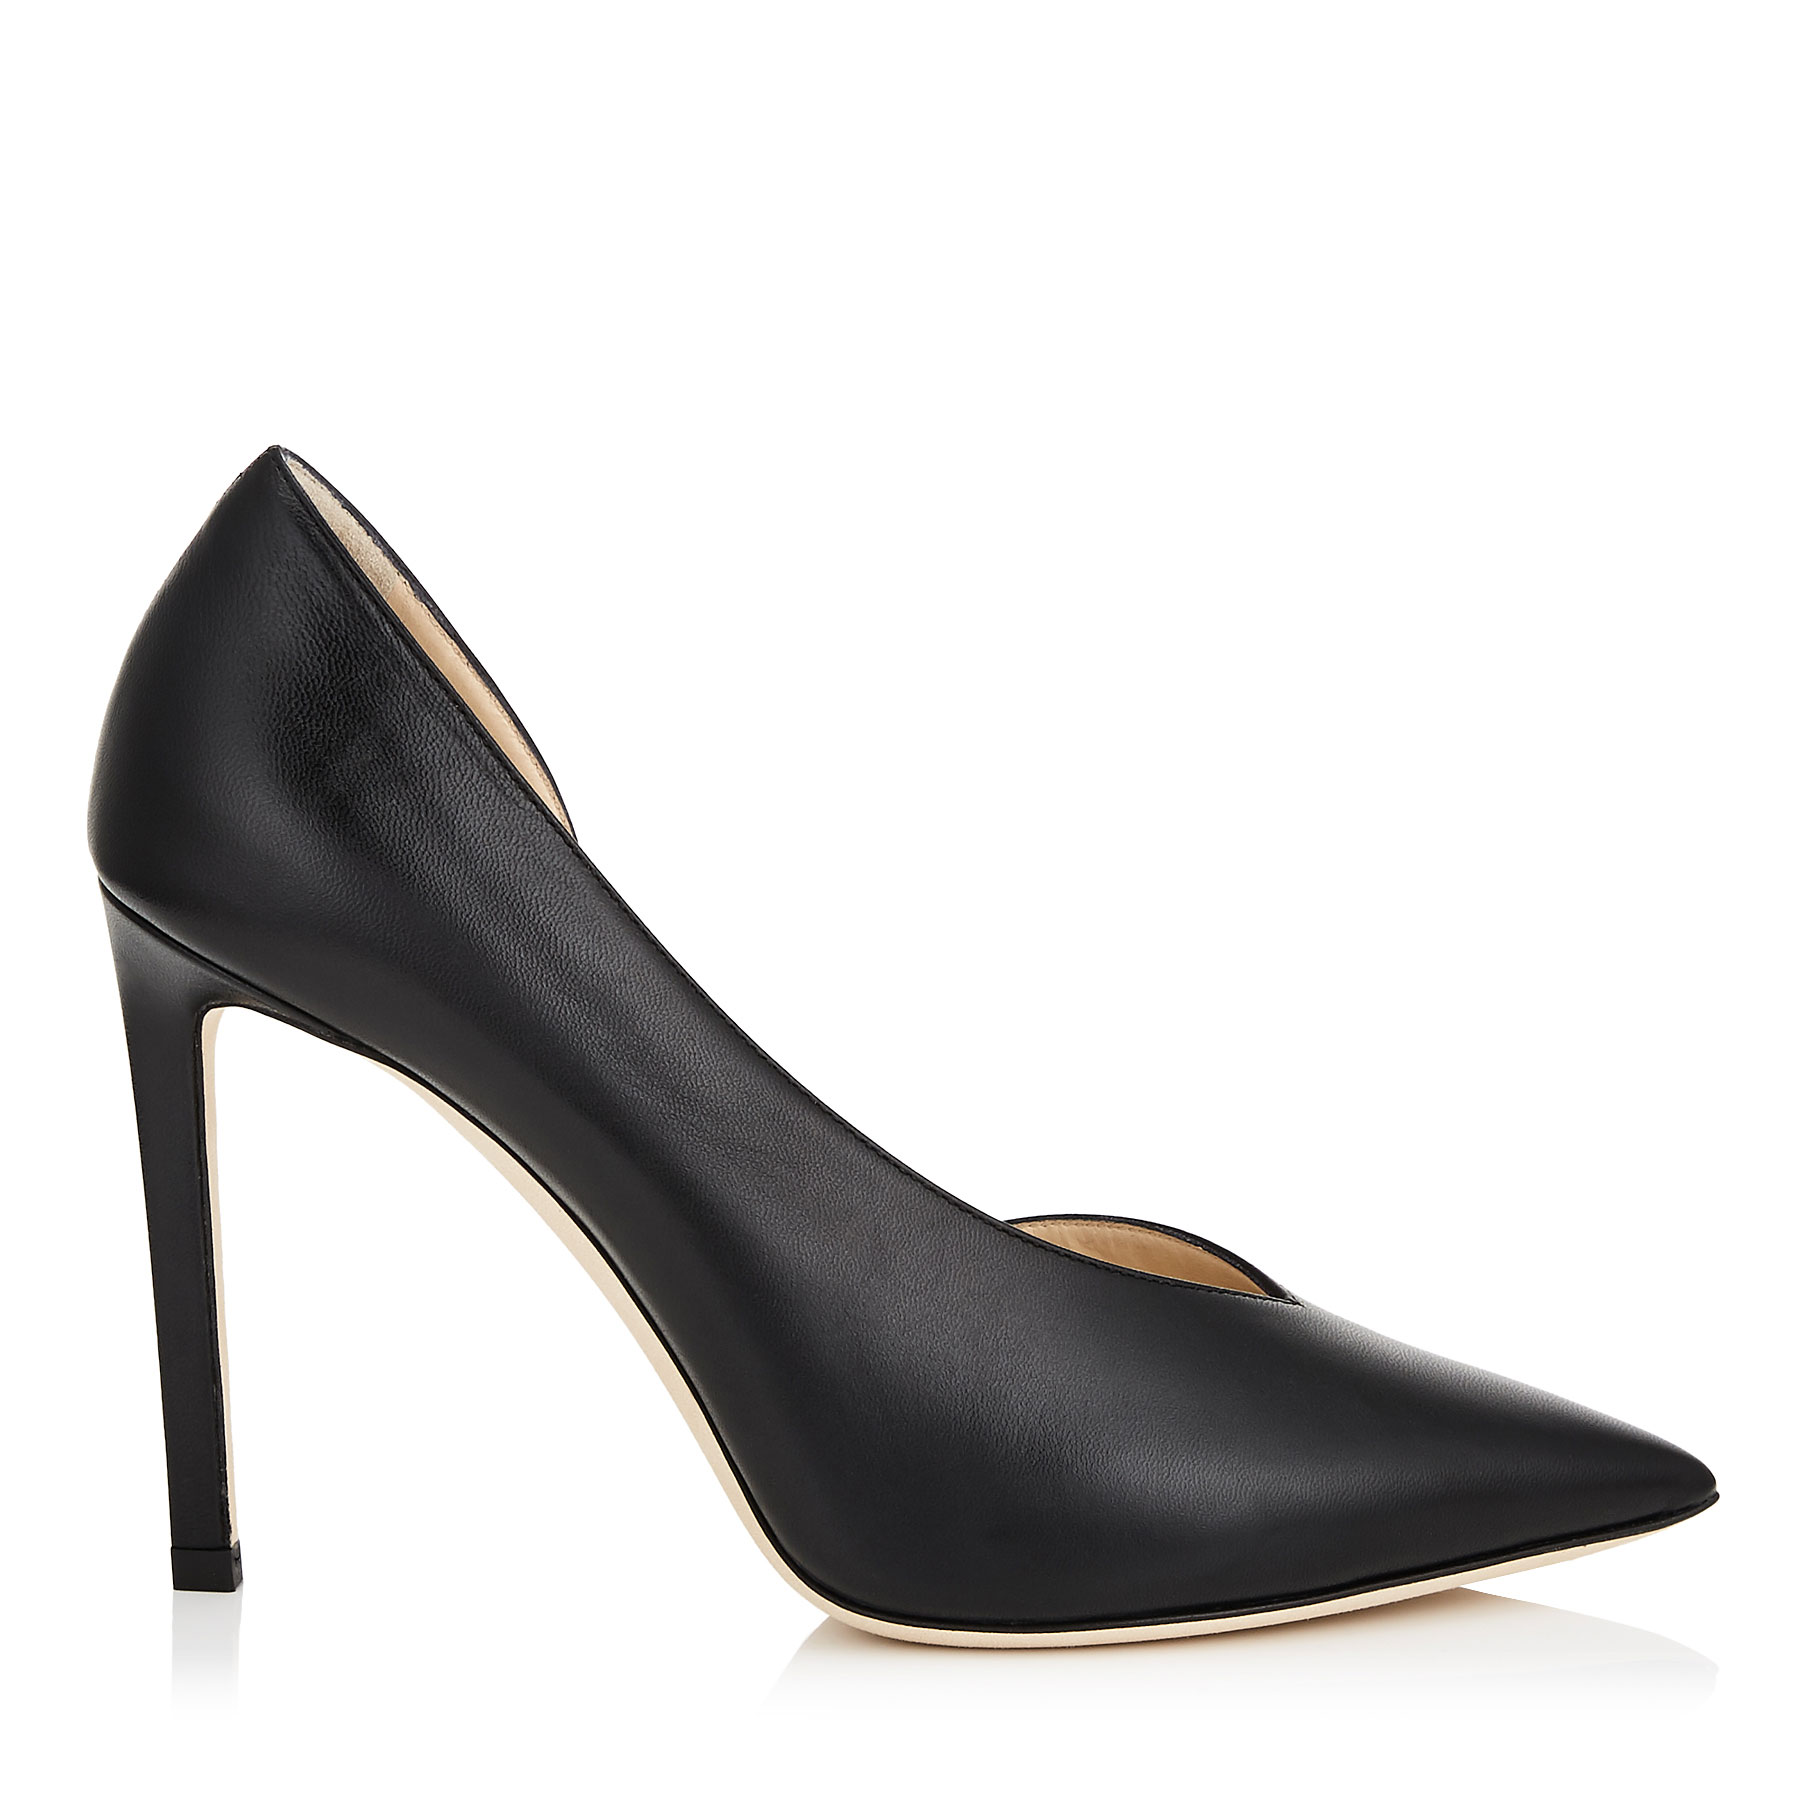 SOPHIA 100 Black Kid Leather Pointy Toe Pumps by Jimmy Choo